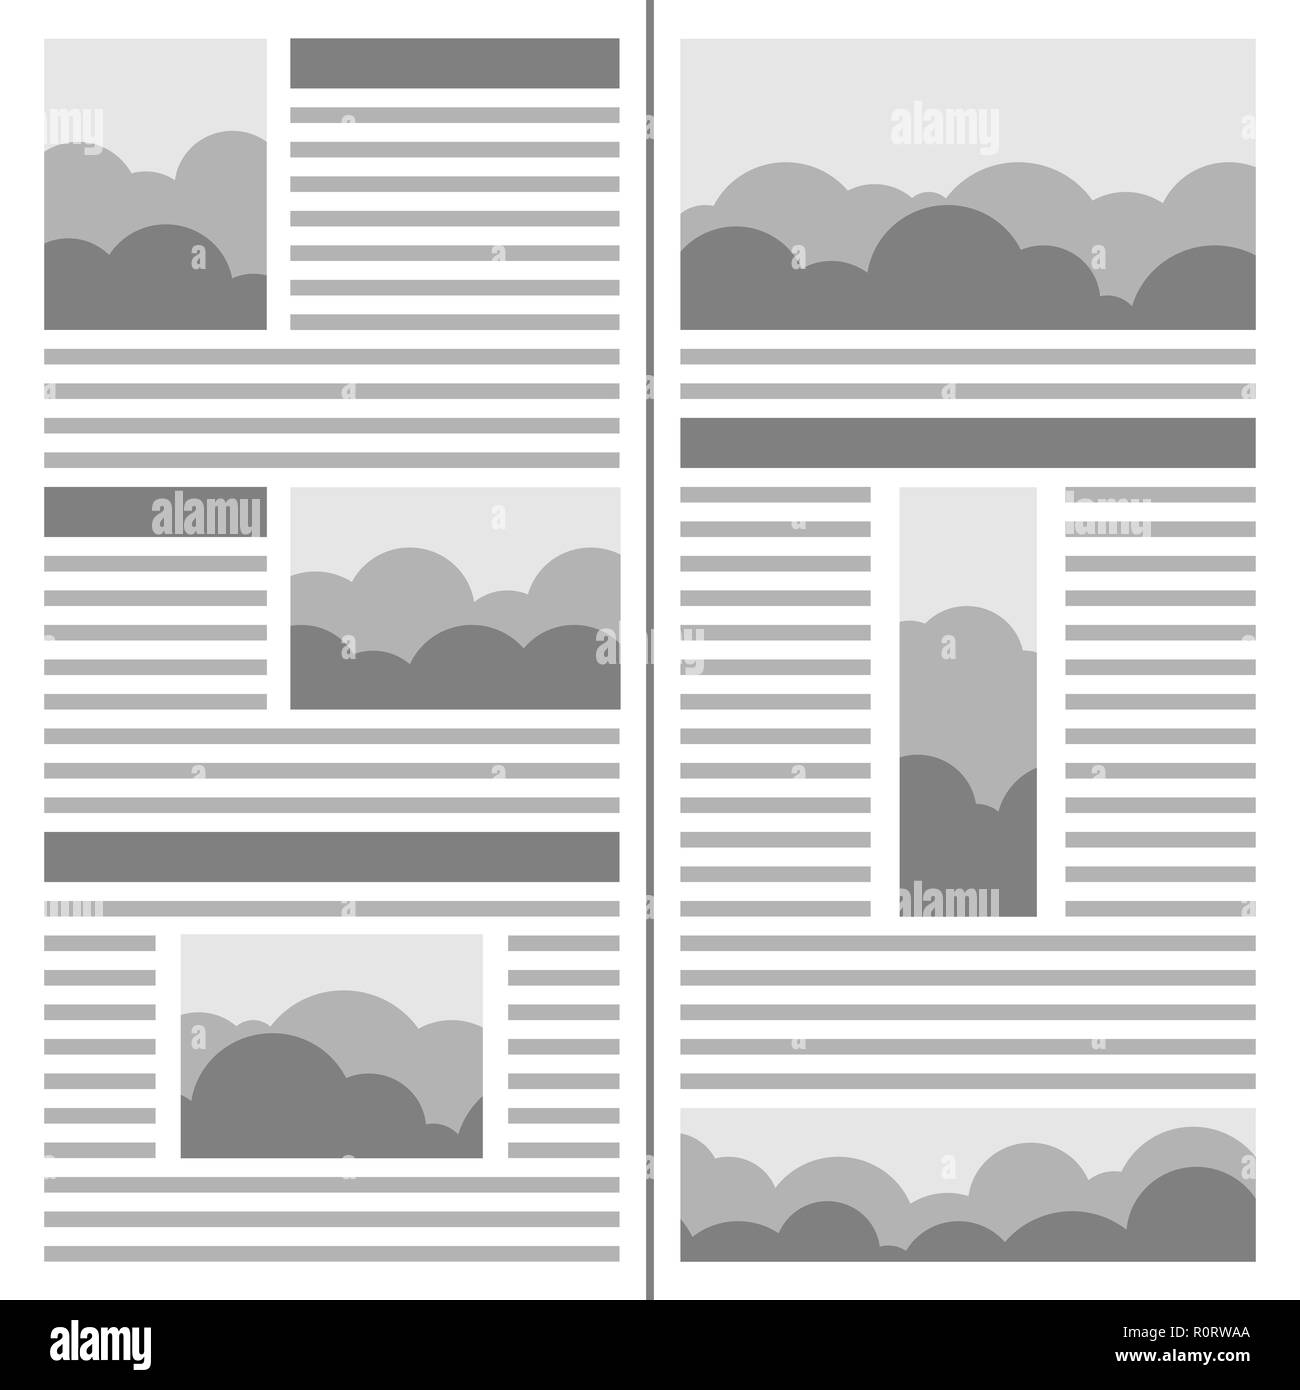 Newspaper design. Template of the journal with columns and pictures - Stock Image